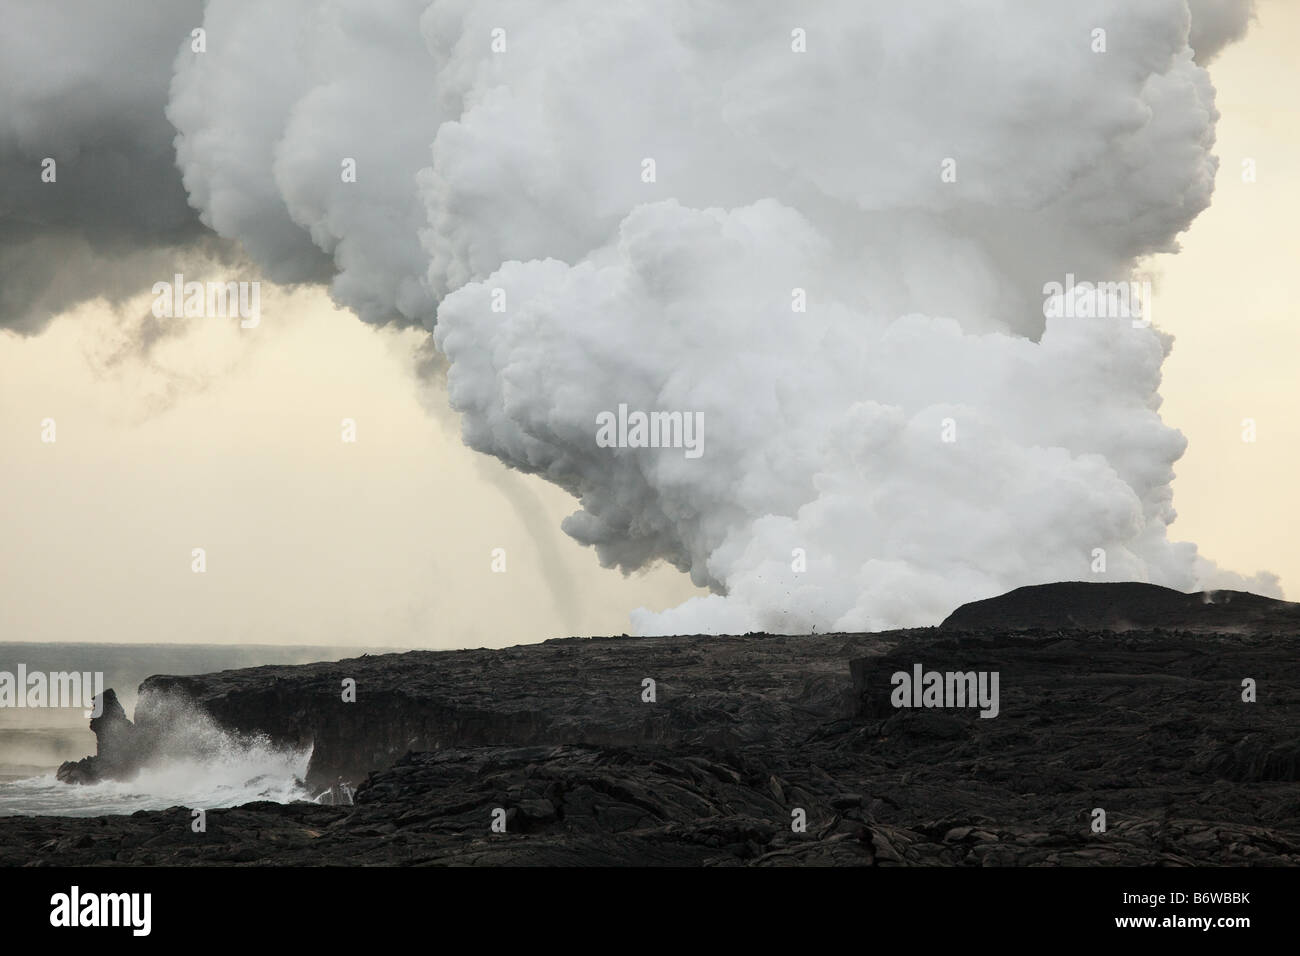 Steam plume and volcanic eruption at Kalapana, Big Island, Hawaii, USA - Stock Image